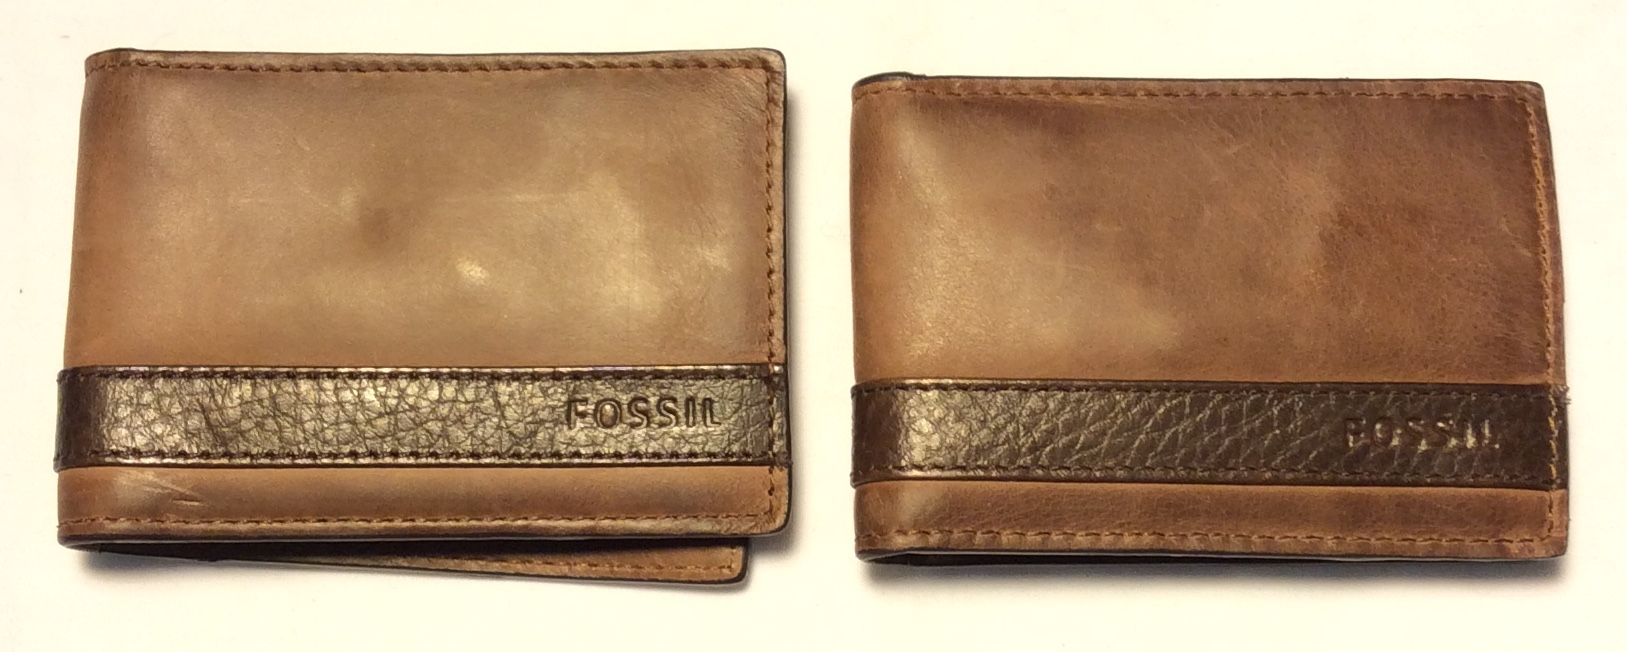 Fossil Brown leather bifold